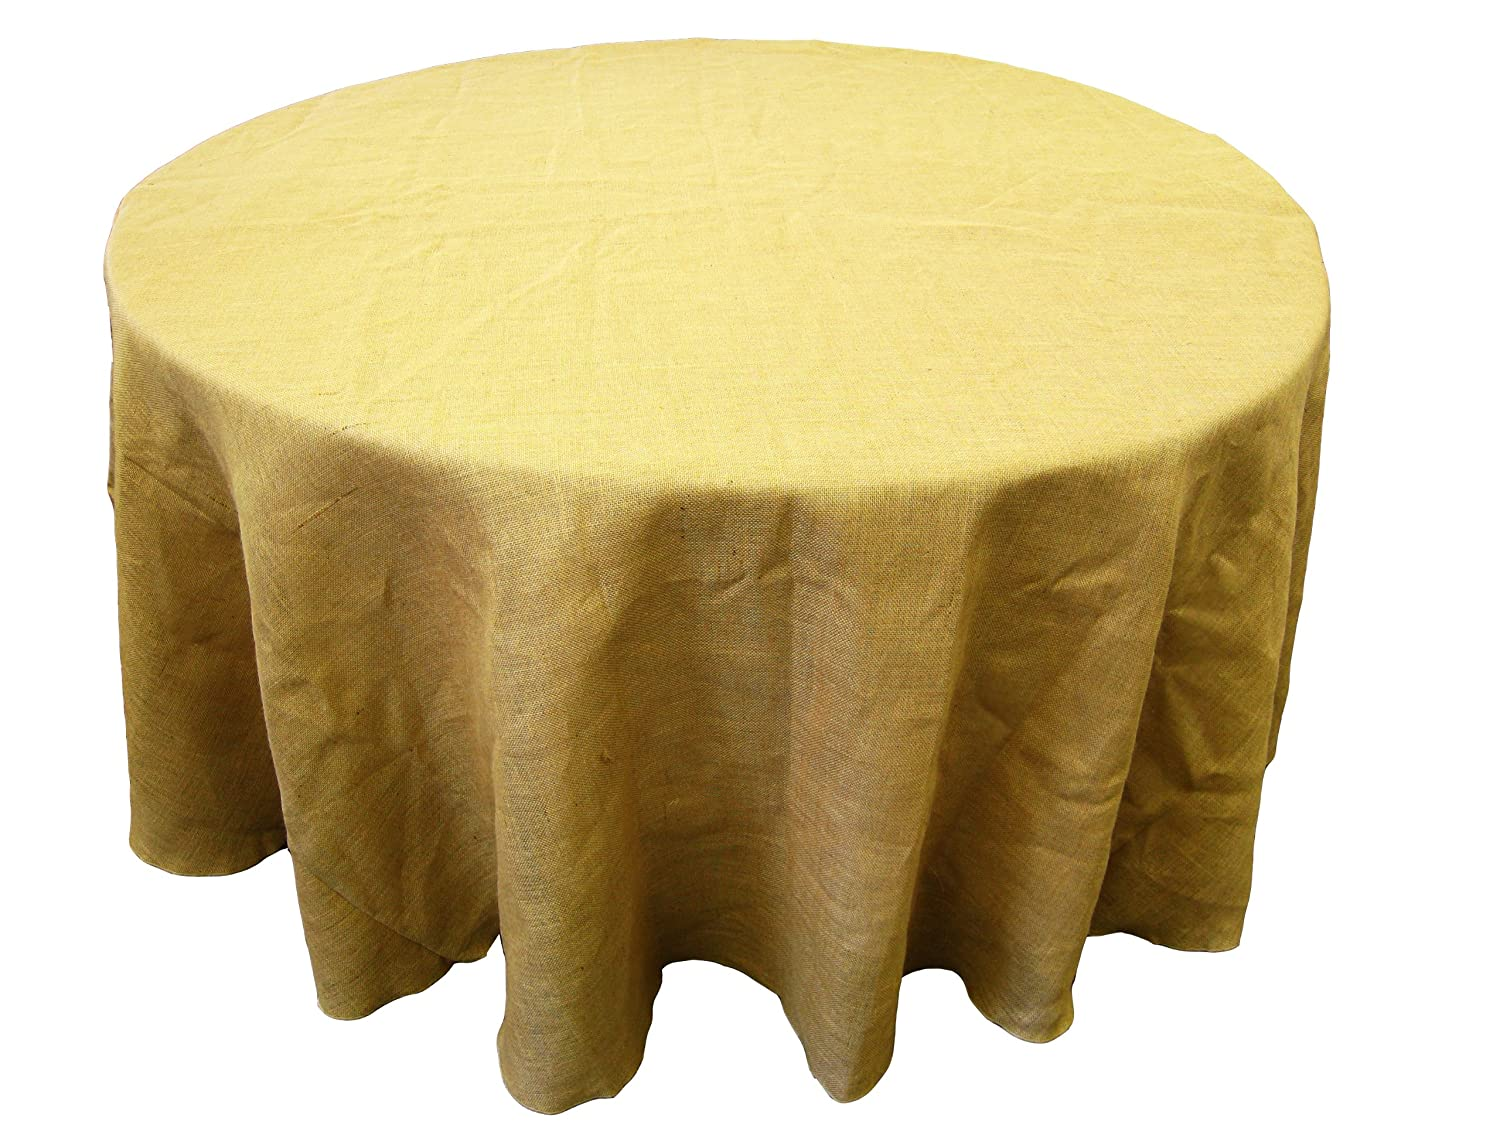 Amazon LA Linen Natural Burlap Tablecloth Round 108 Inch